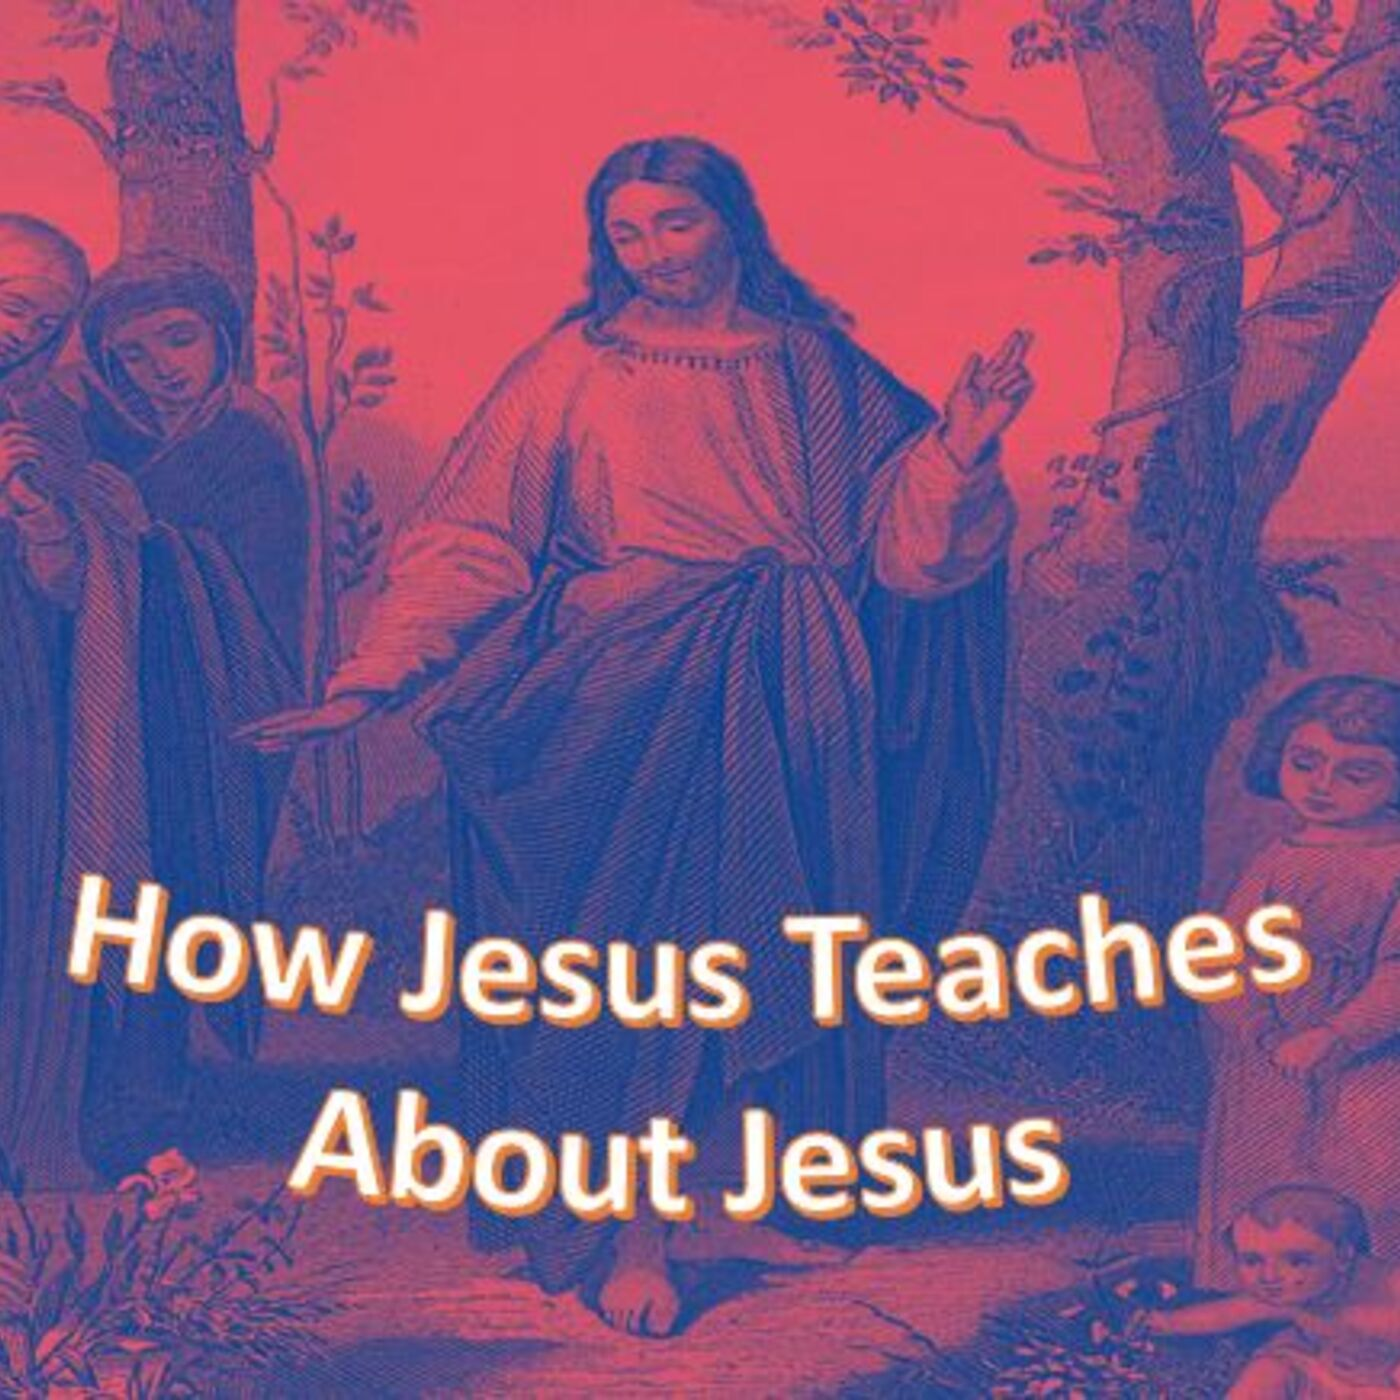 August 30, 2020: How Jesus Teaches About Jesus